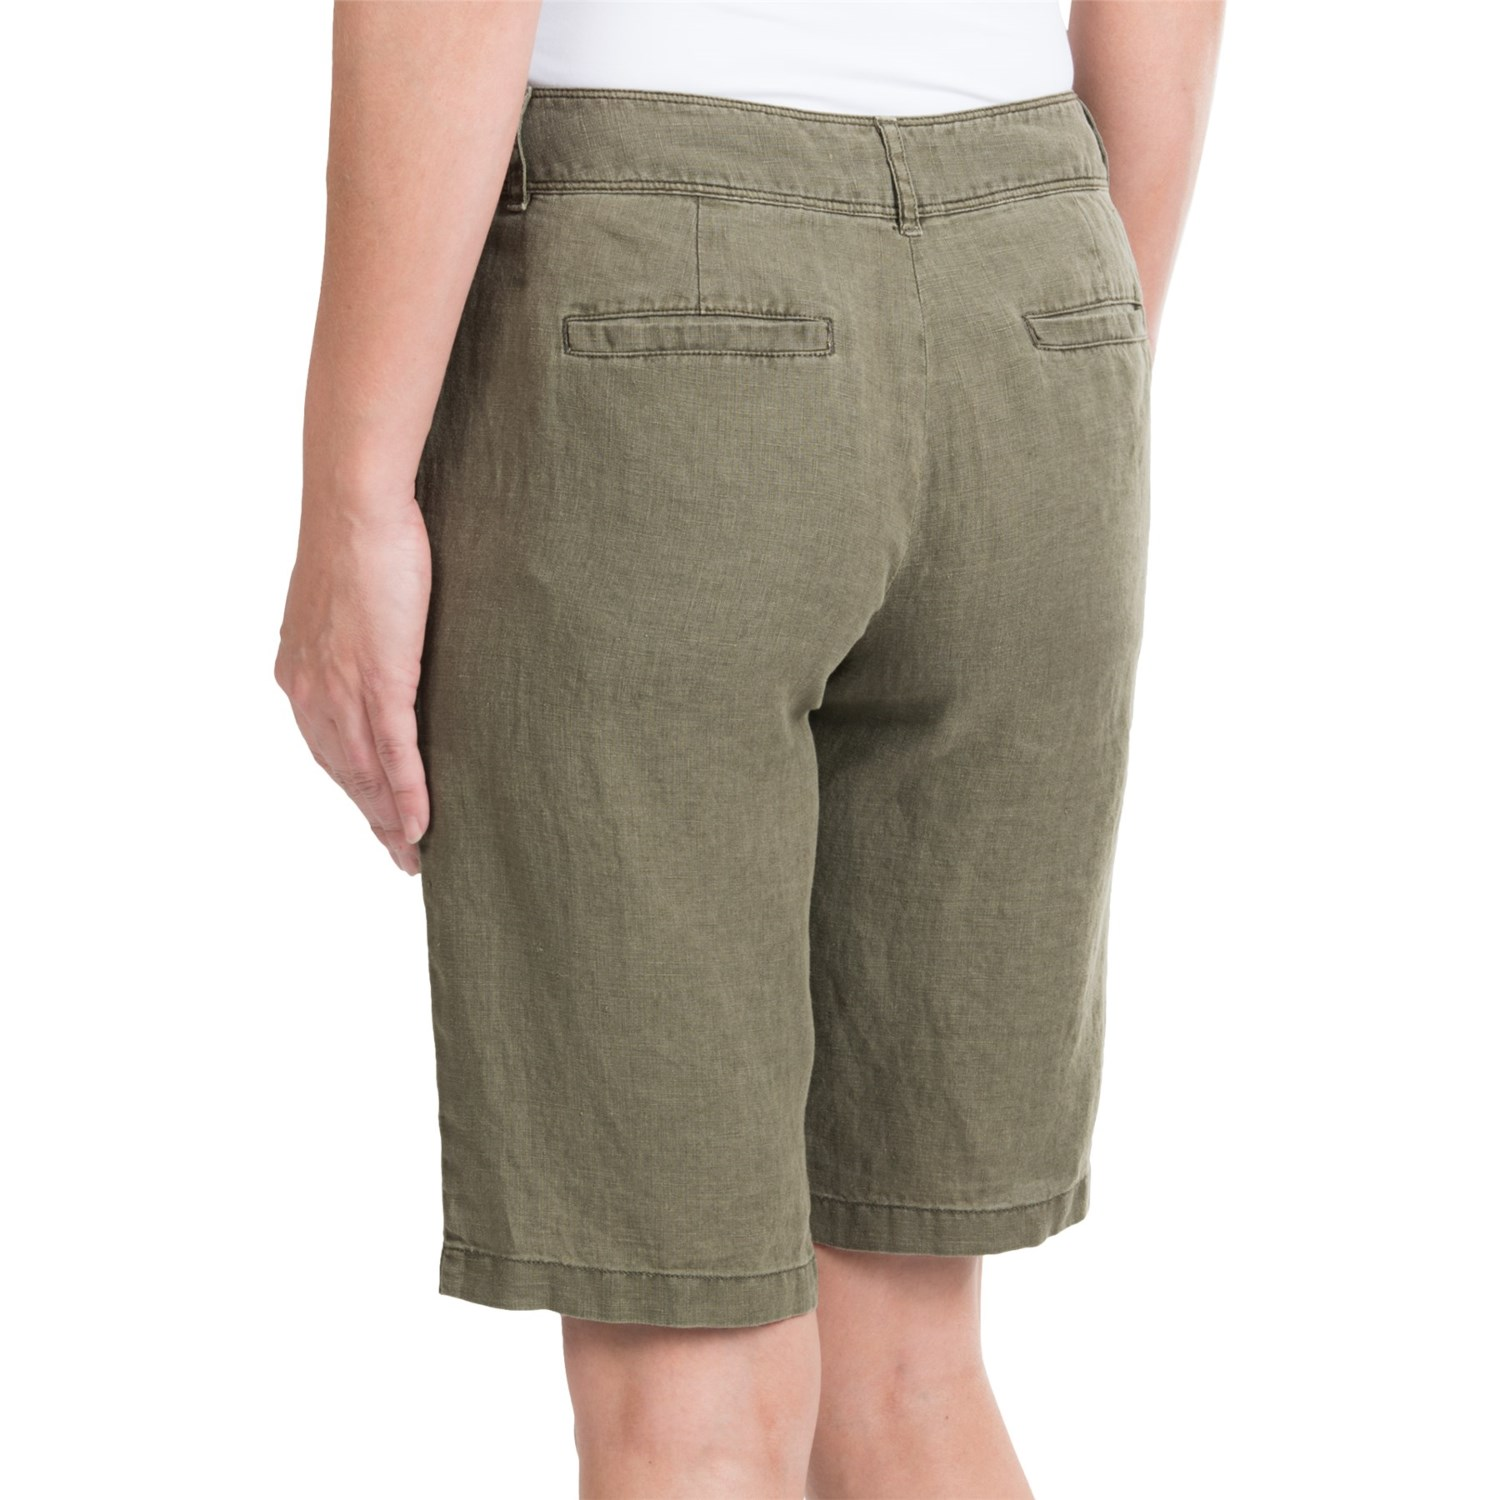 Find great deals on eBay for womens linen bermuda shorts. Shop with confidence.